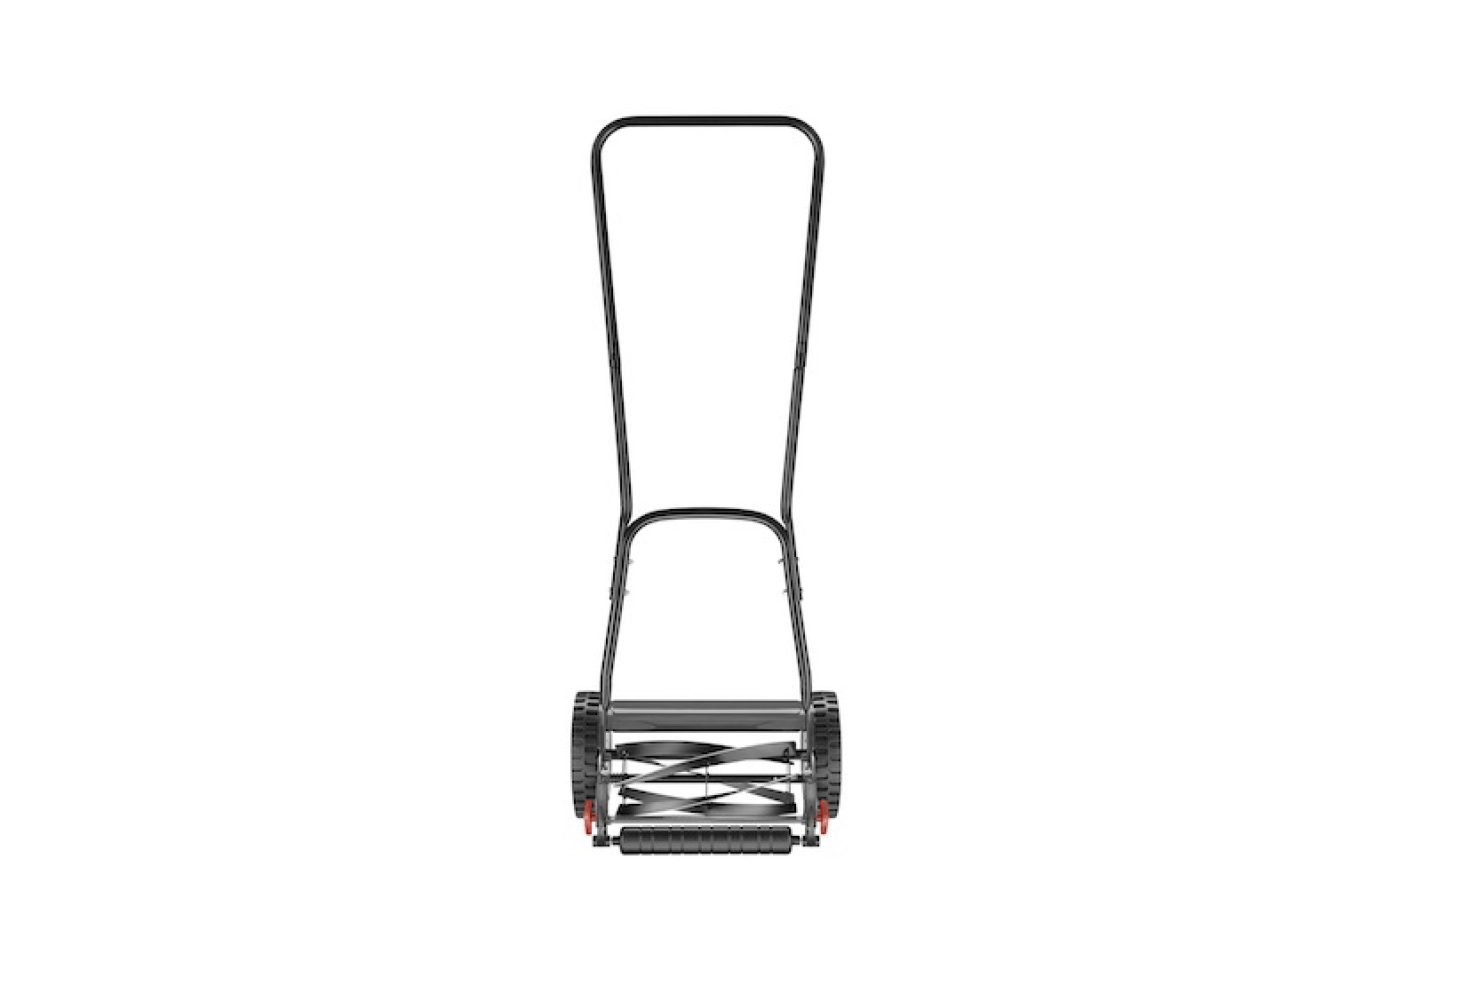 An Ozito Push Reel Lawn Mower has adjustable, self-sharpening blades and slip-resistant wheels. It is $69.97 NZD at Bunnings.